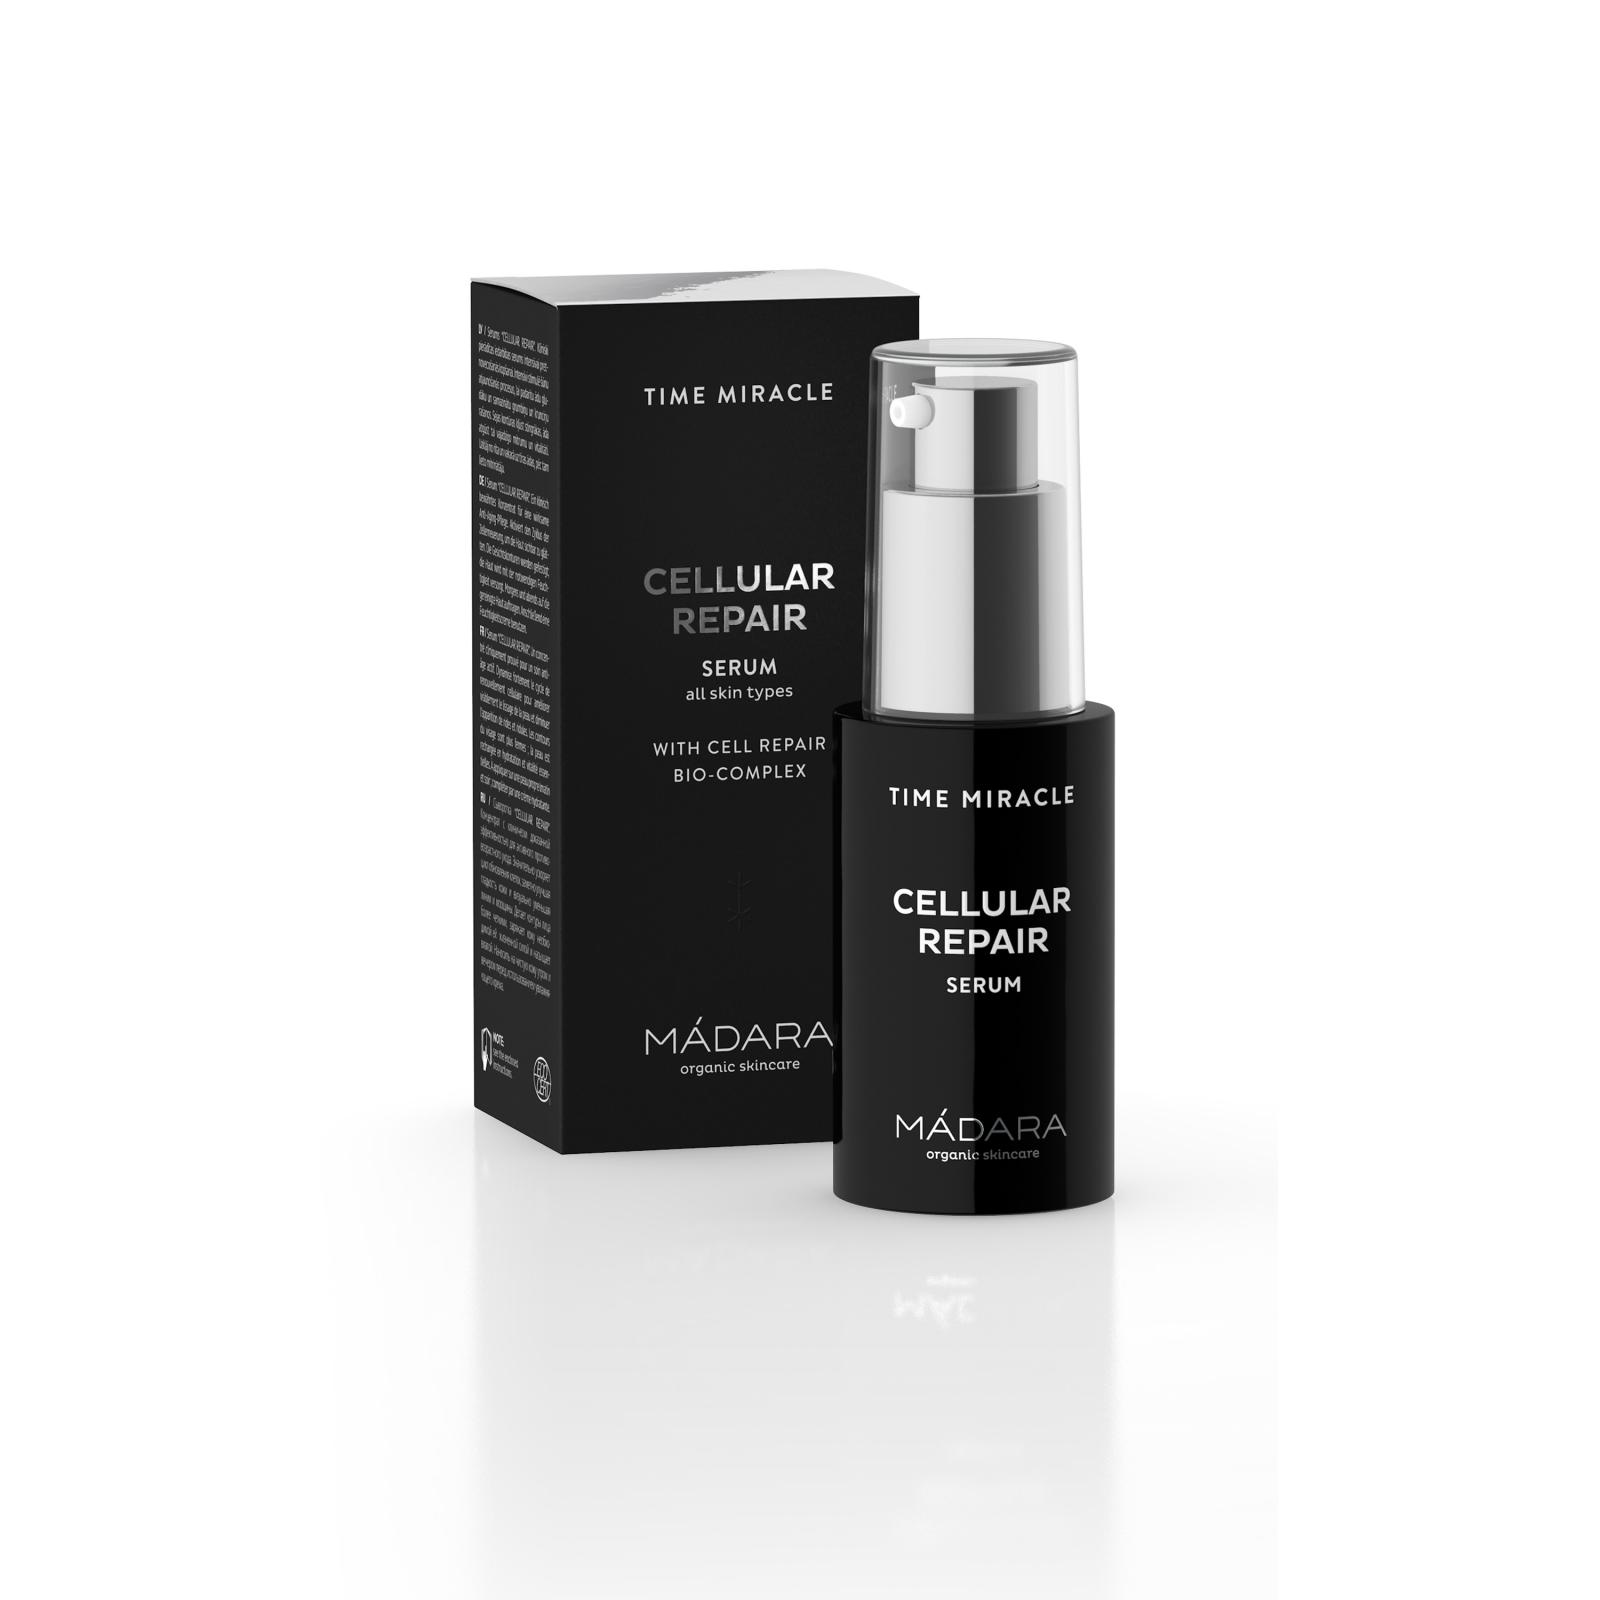 Mádara Obnovující sérum, Time Miracle 30 ml